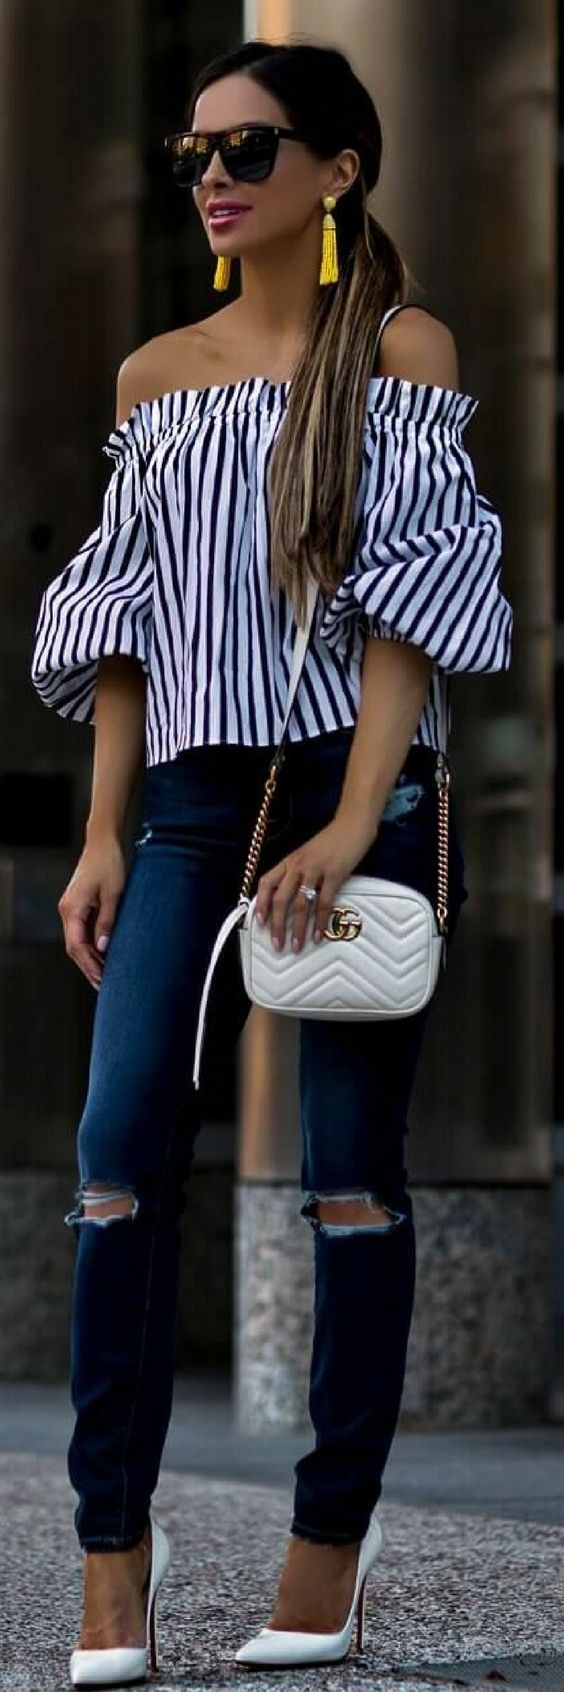 Images of blouse designs that you should have this season